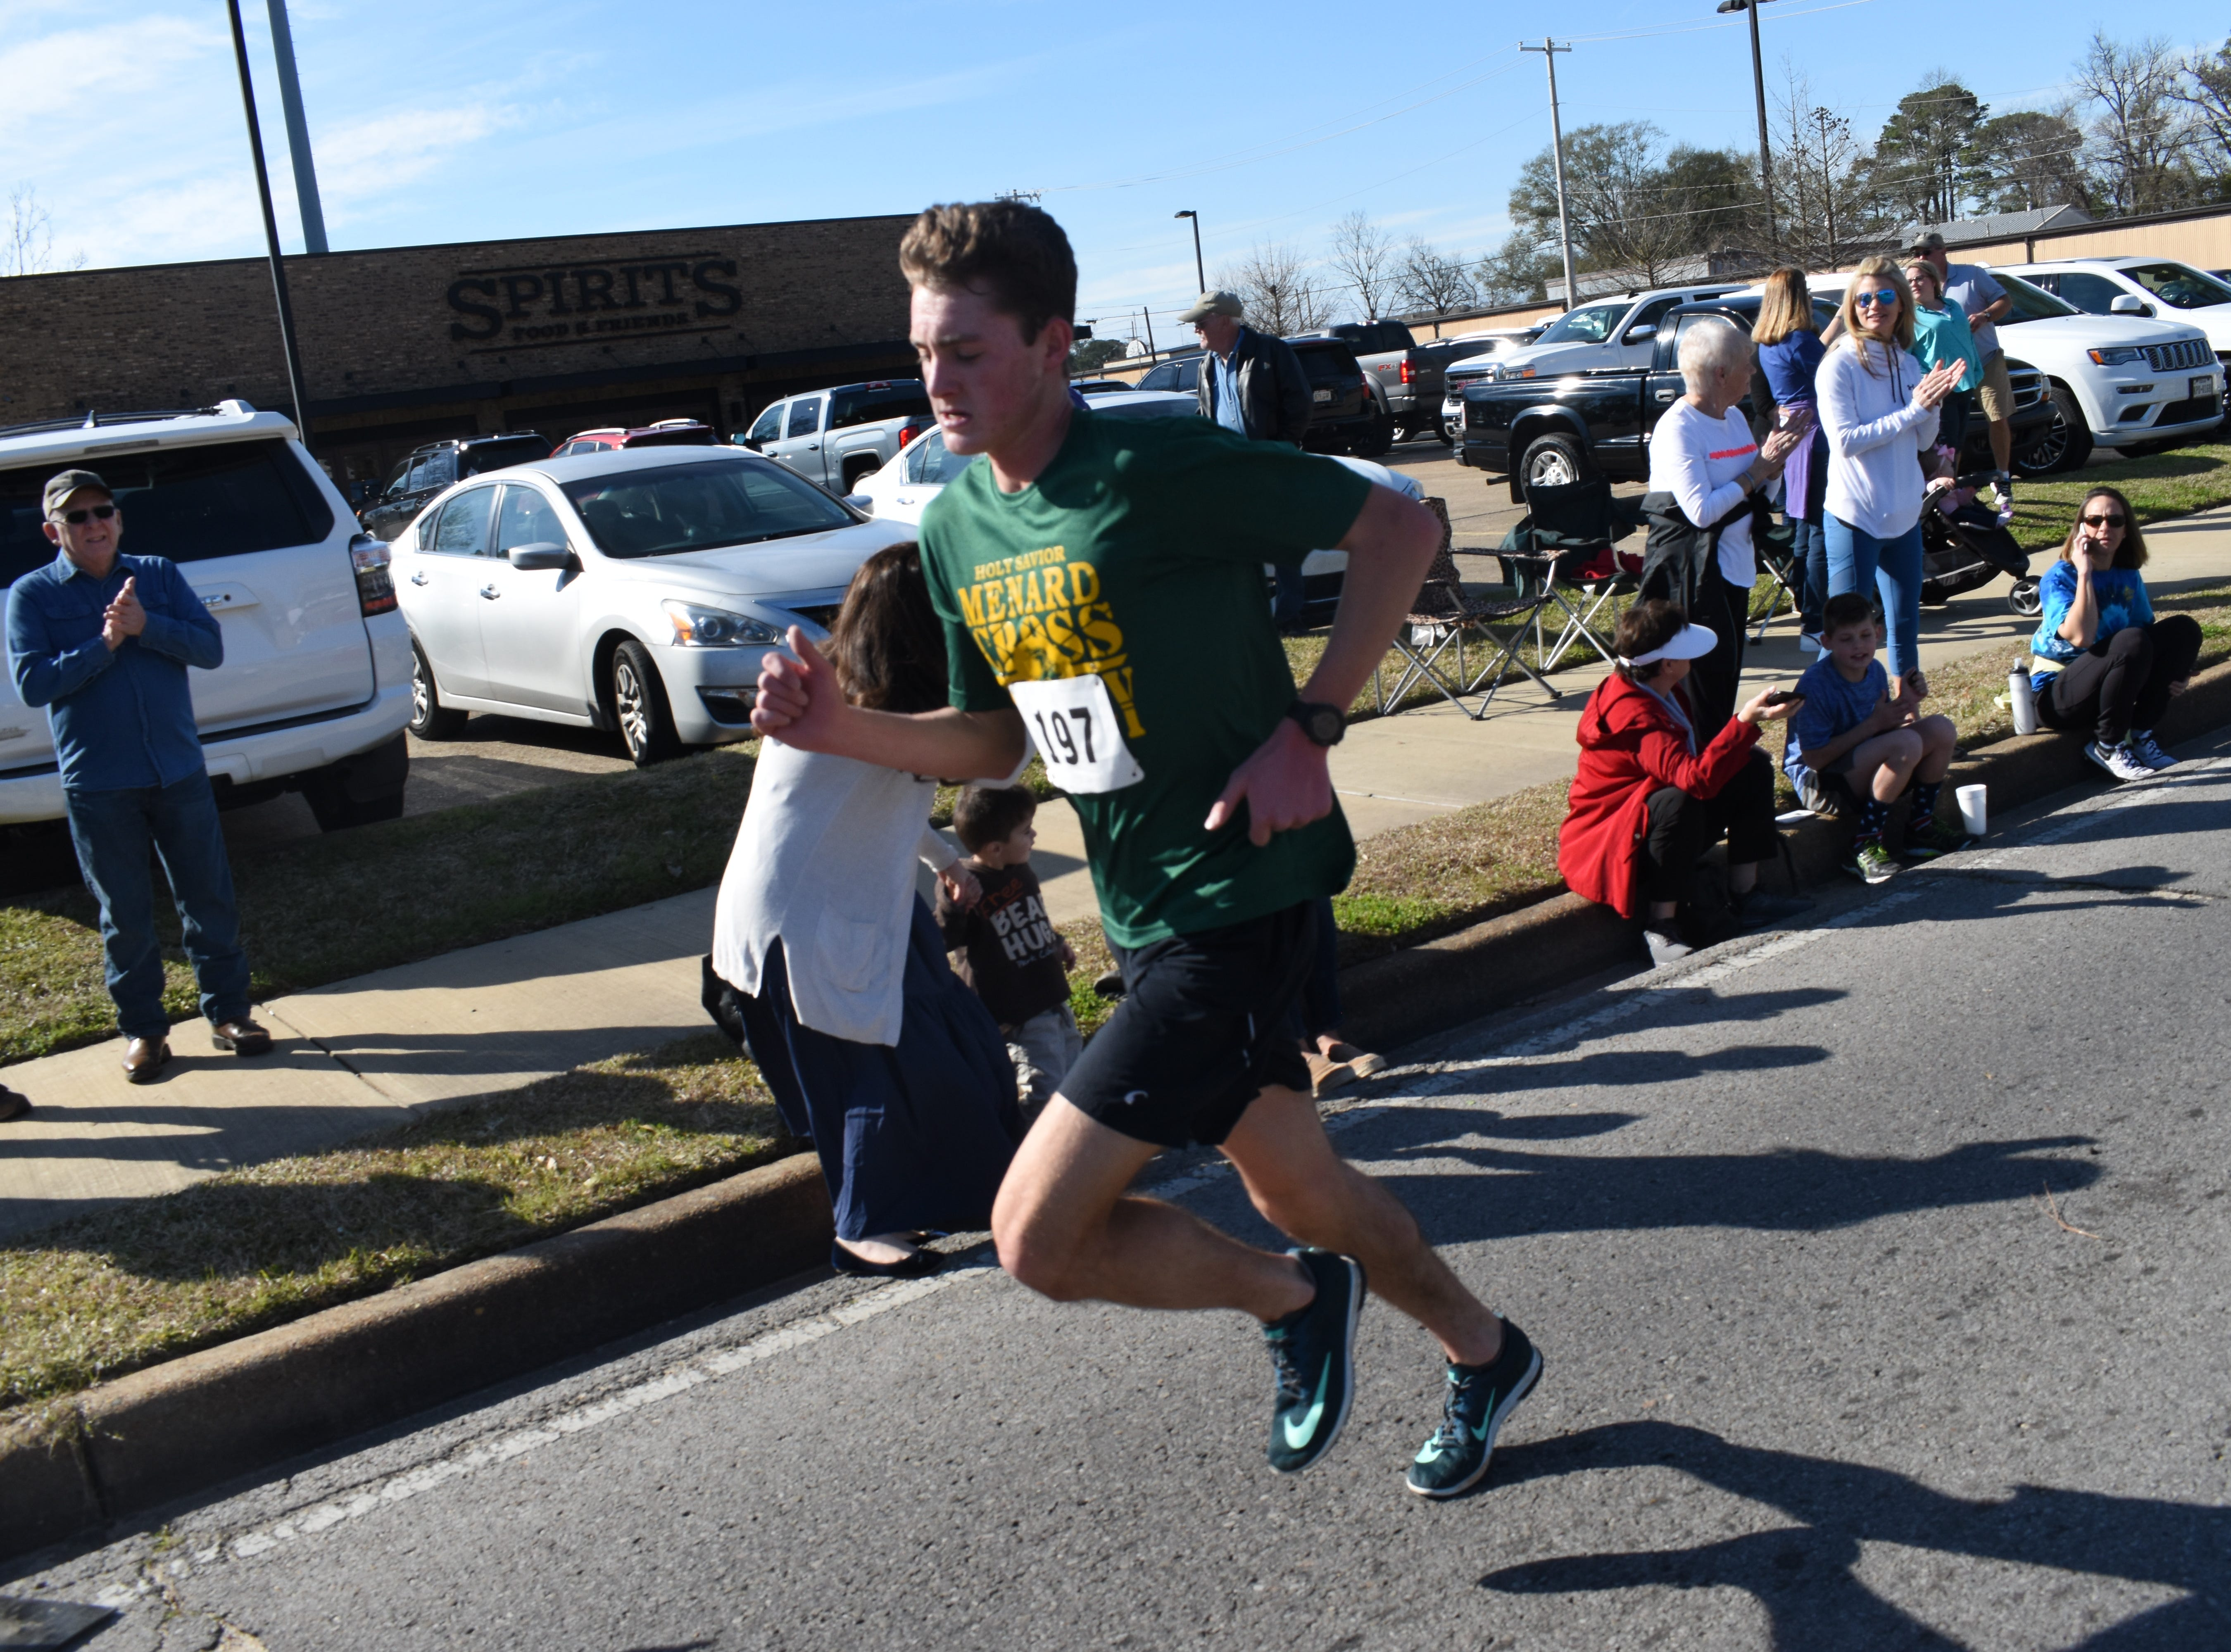 Ben Beard, 17, won the 19th annual Spirits 5K with a time of 16:40.5. Over 212 runners participated in the 19th annual Spirits 5K and 1-mile Fun Run benefitting the Manna House Saturday, Jan. 26, 2019. About 75 runners participated in a new event held this year - the Beer Run. Runners had to drink four beers and sprint to the finish line. Proceeds from the runs benefit the Manna House which serves free meals year round to anyone who needs a meal regardless of income. Over 200 people a day are fed. The Manna House opened in 1990 and was the vision of Father Gerad Foley.